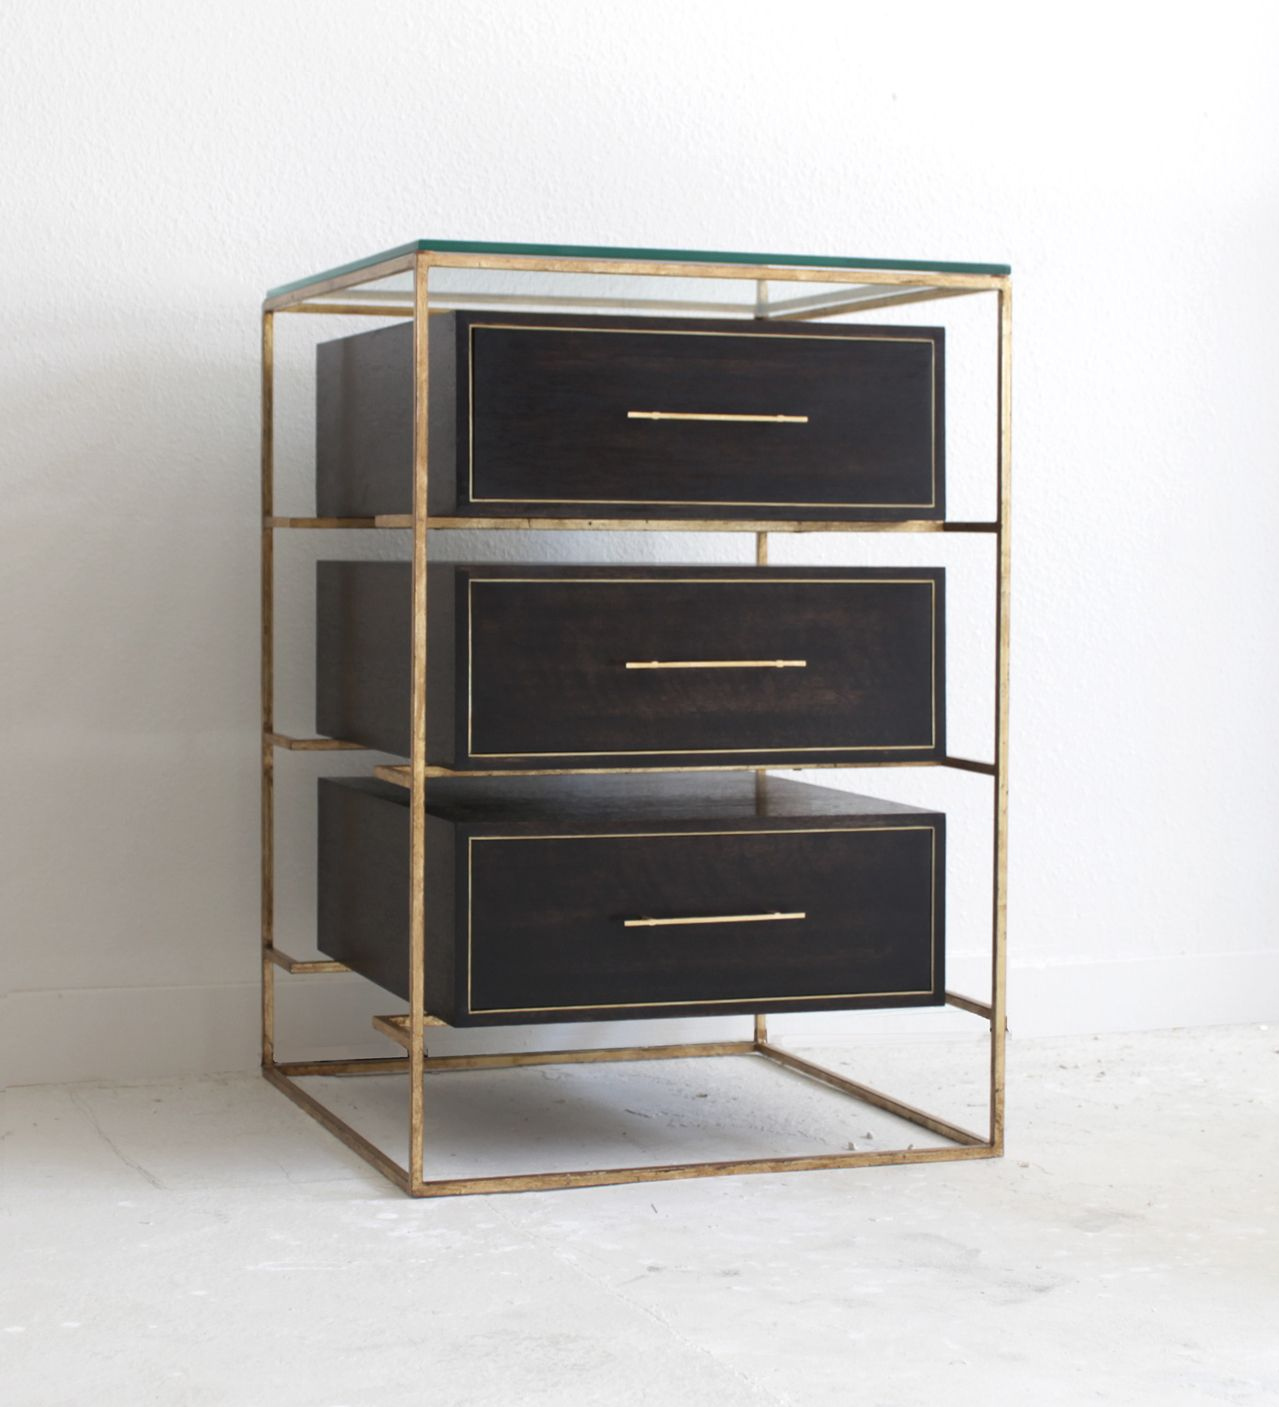 Awesome The Ultimate Glamorous, Artdeco, Slick, Bedside Table   Floating Drawer  Bedside Table By Codor Design